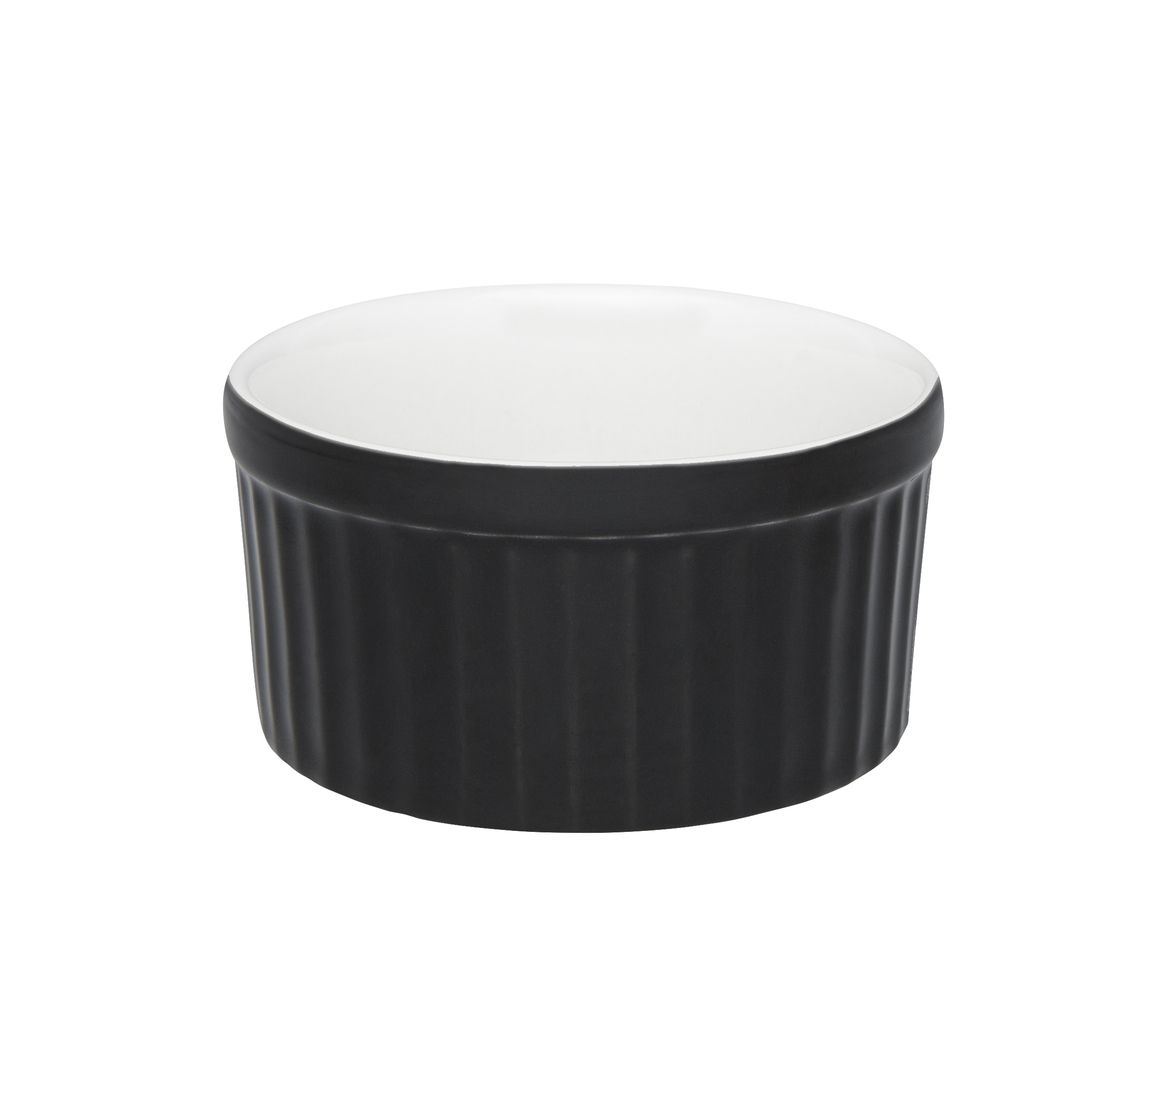 Tigela Ramequin 10X5Cm 180Ml - Branco/Preto - Oxford Cookware